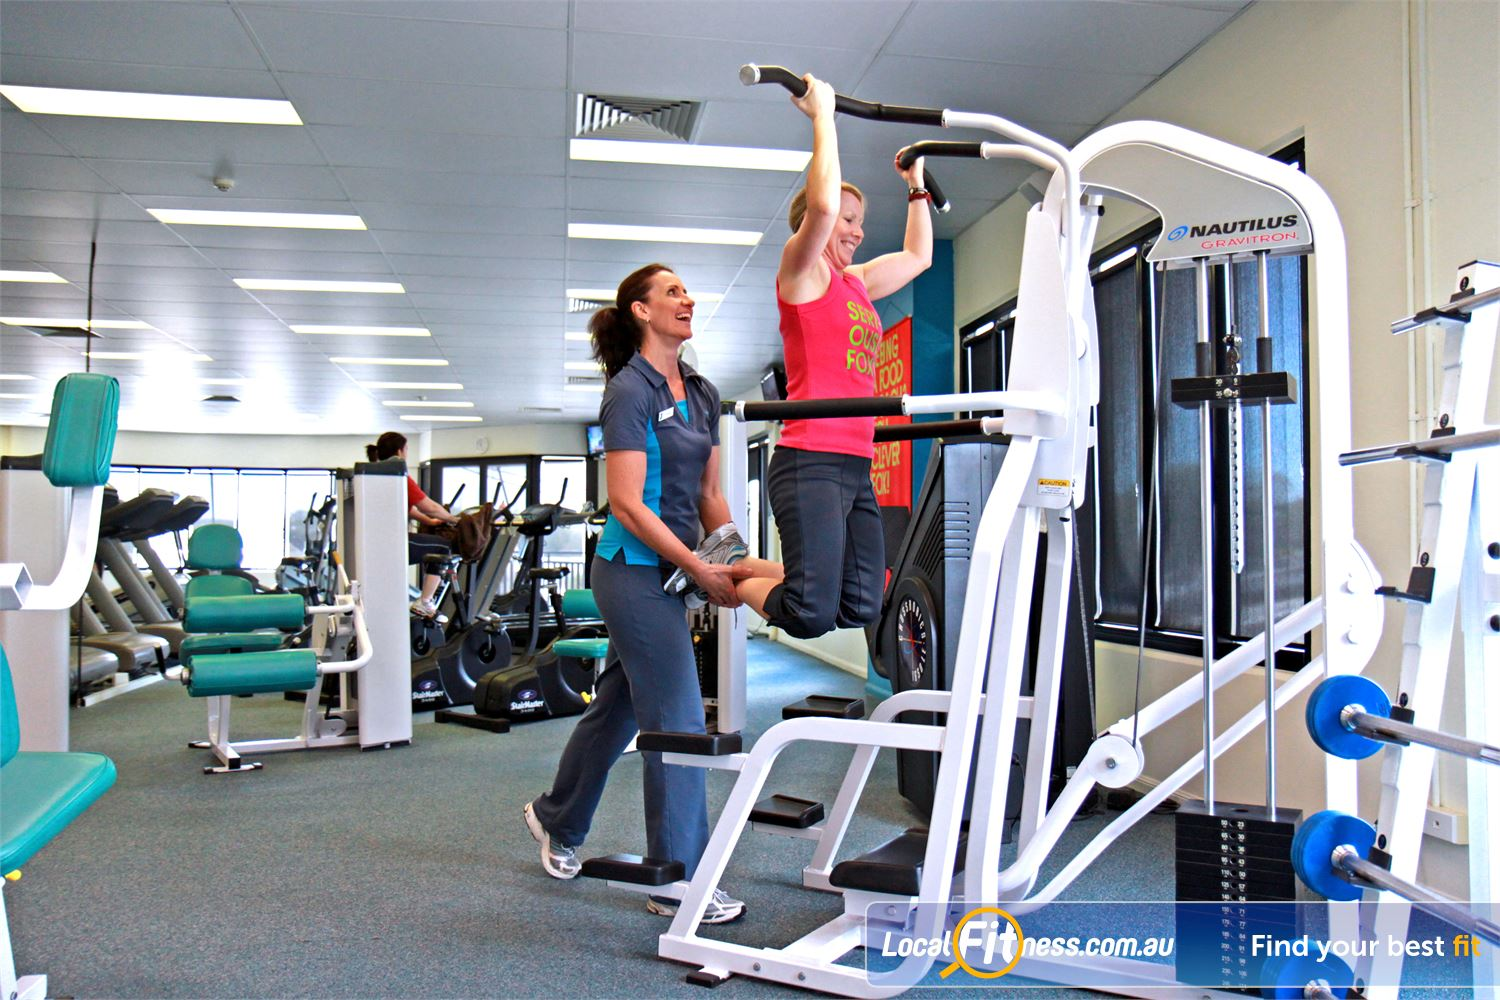 Fernwood Fitness Near Murrumba Downs We have the right Petrie gym equipment for women's weight loss goals.